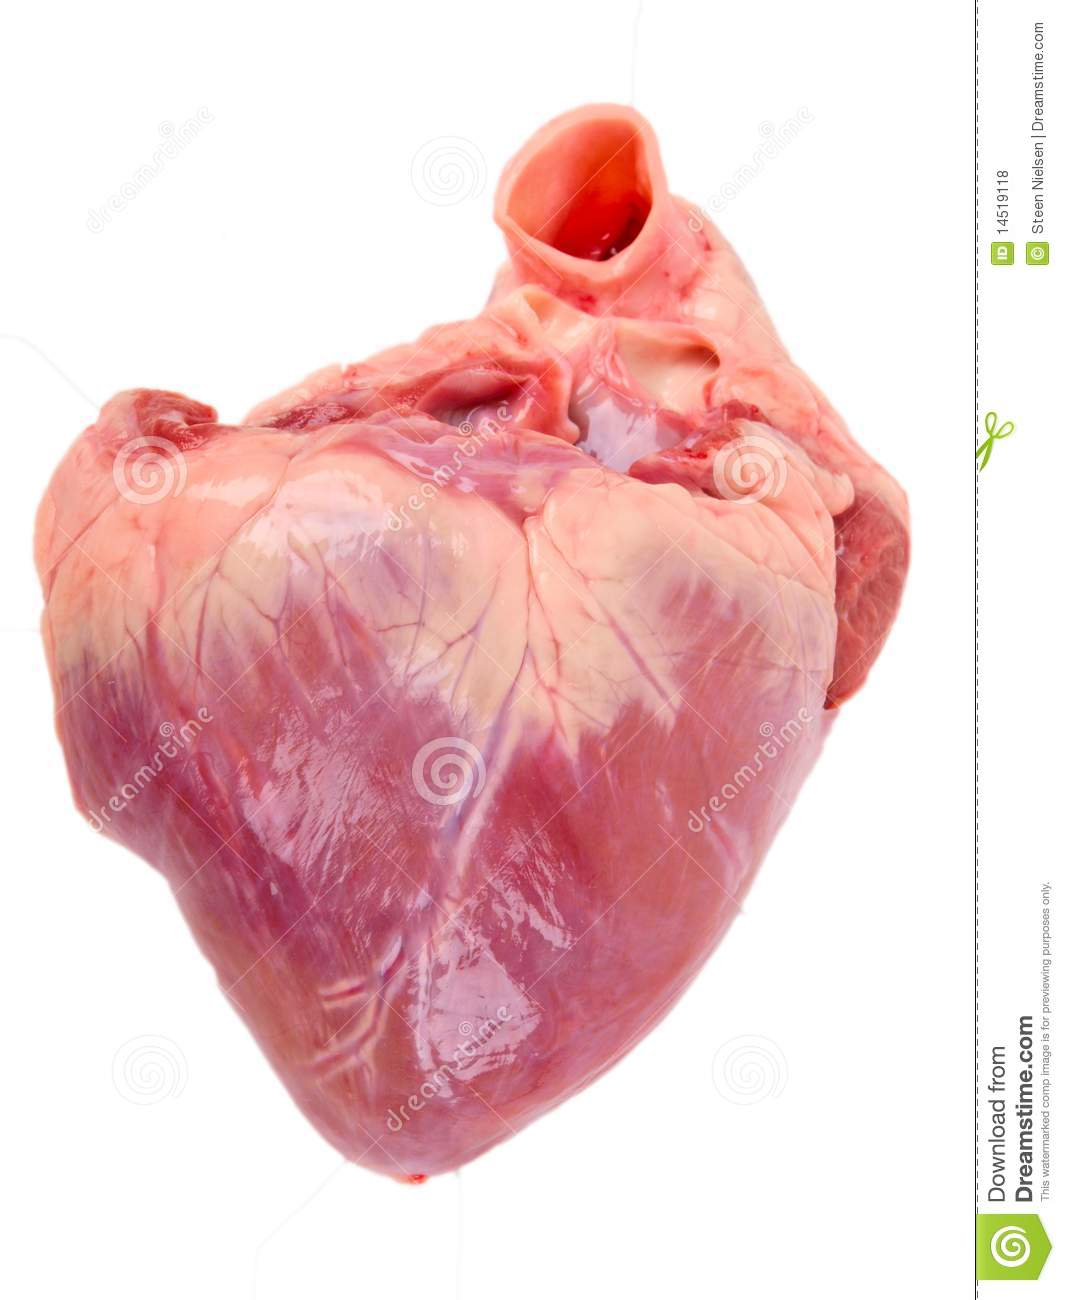 Pig heart. stock photo. Image of anatomy, education, parts - 14519118